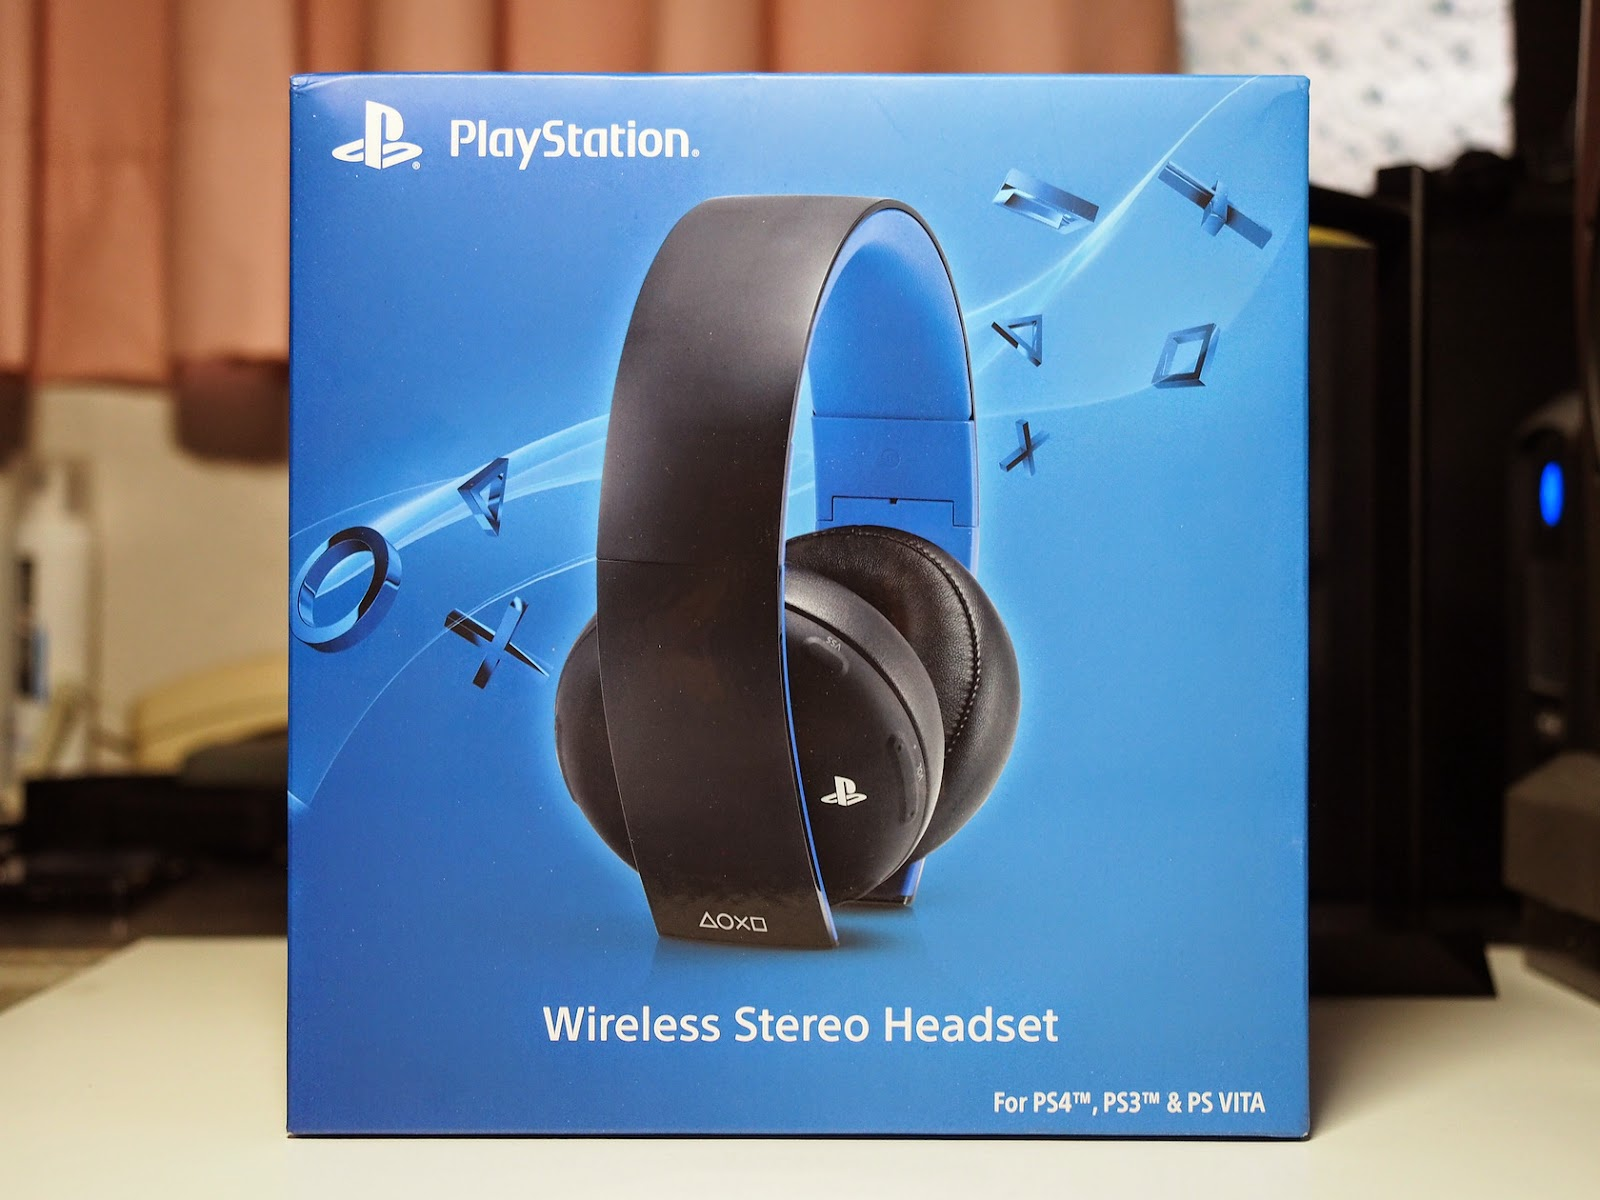 sony playstation gold wireless stereo headset. Black Bedroom Furniture Sets. Home Design Ideas